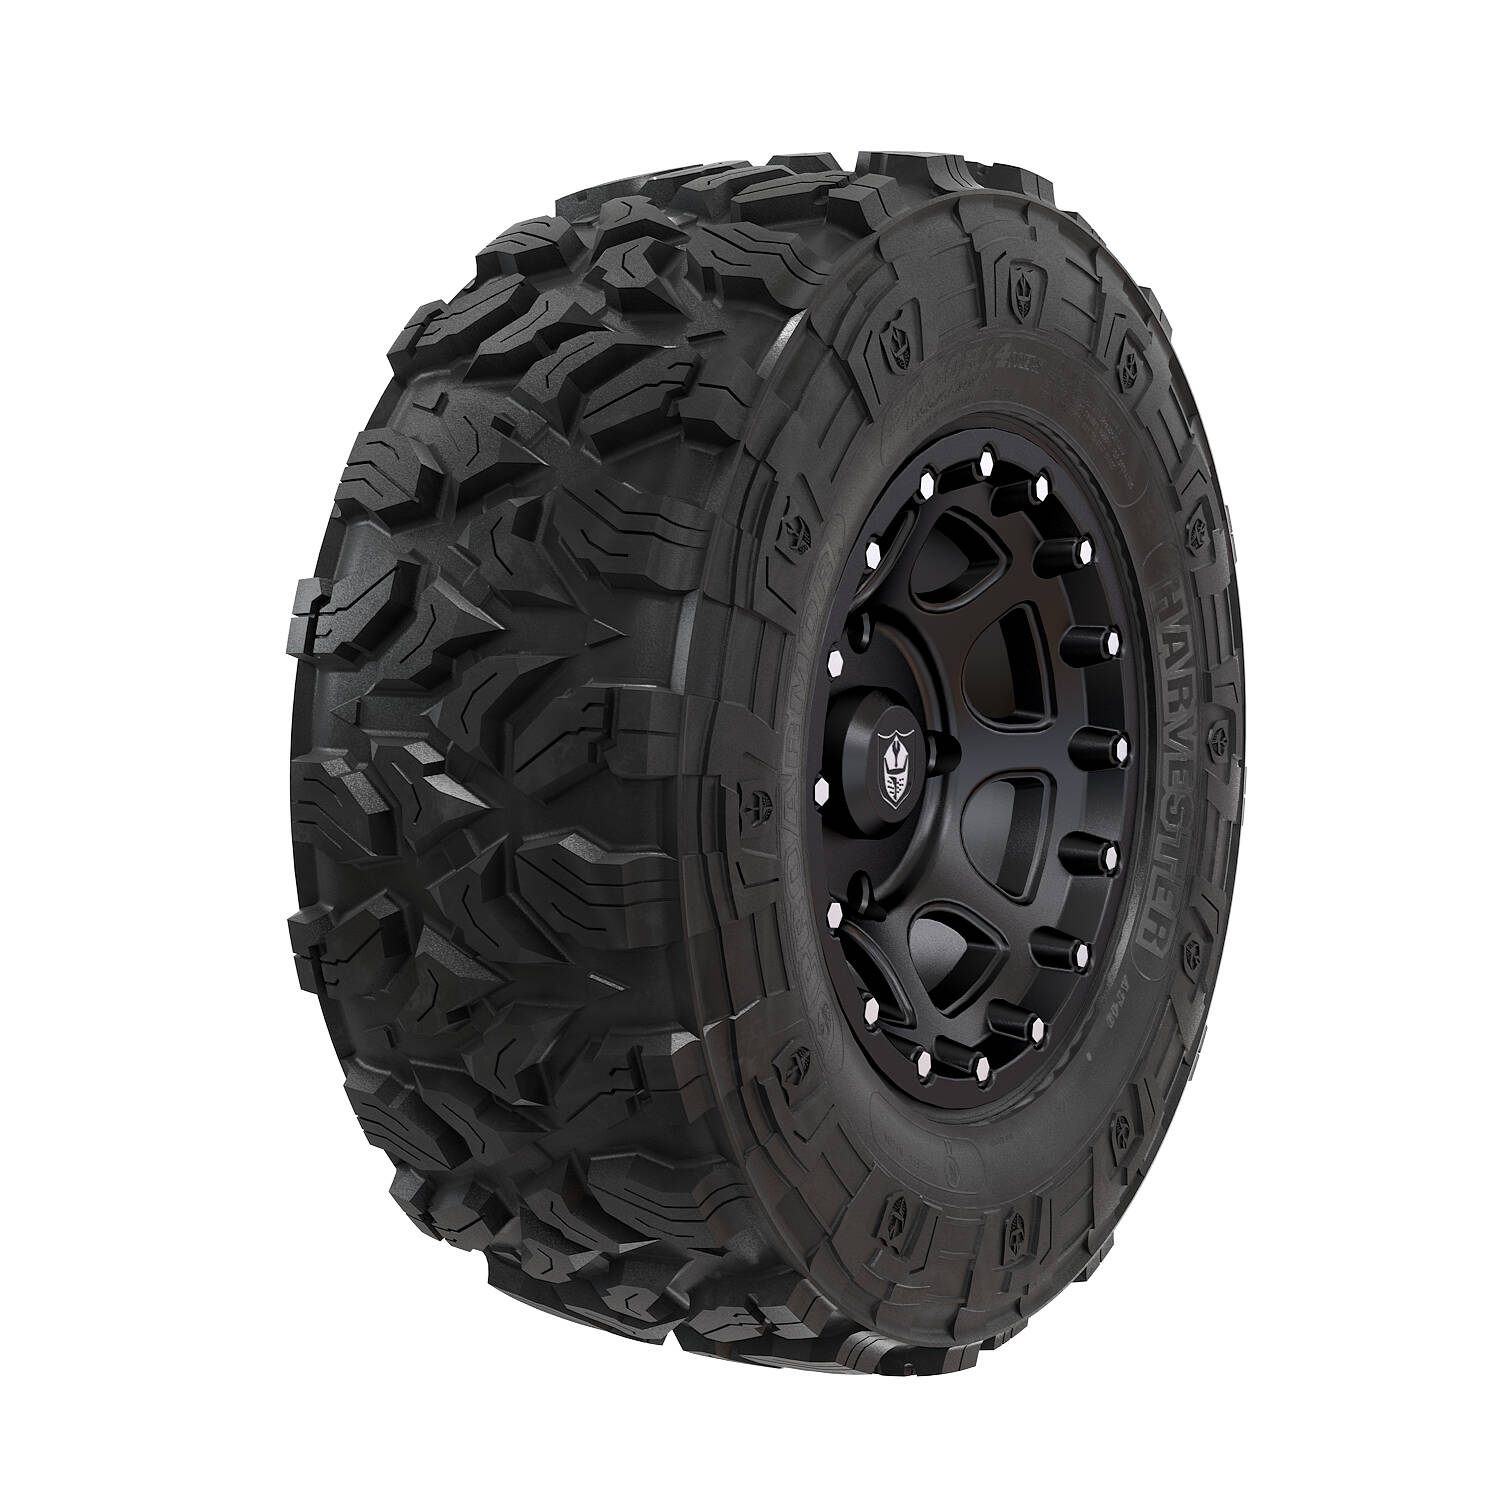 Wheel & Tire Set: Pro Armor Harvester® & Shackle - Matte Black - 28""